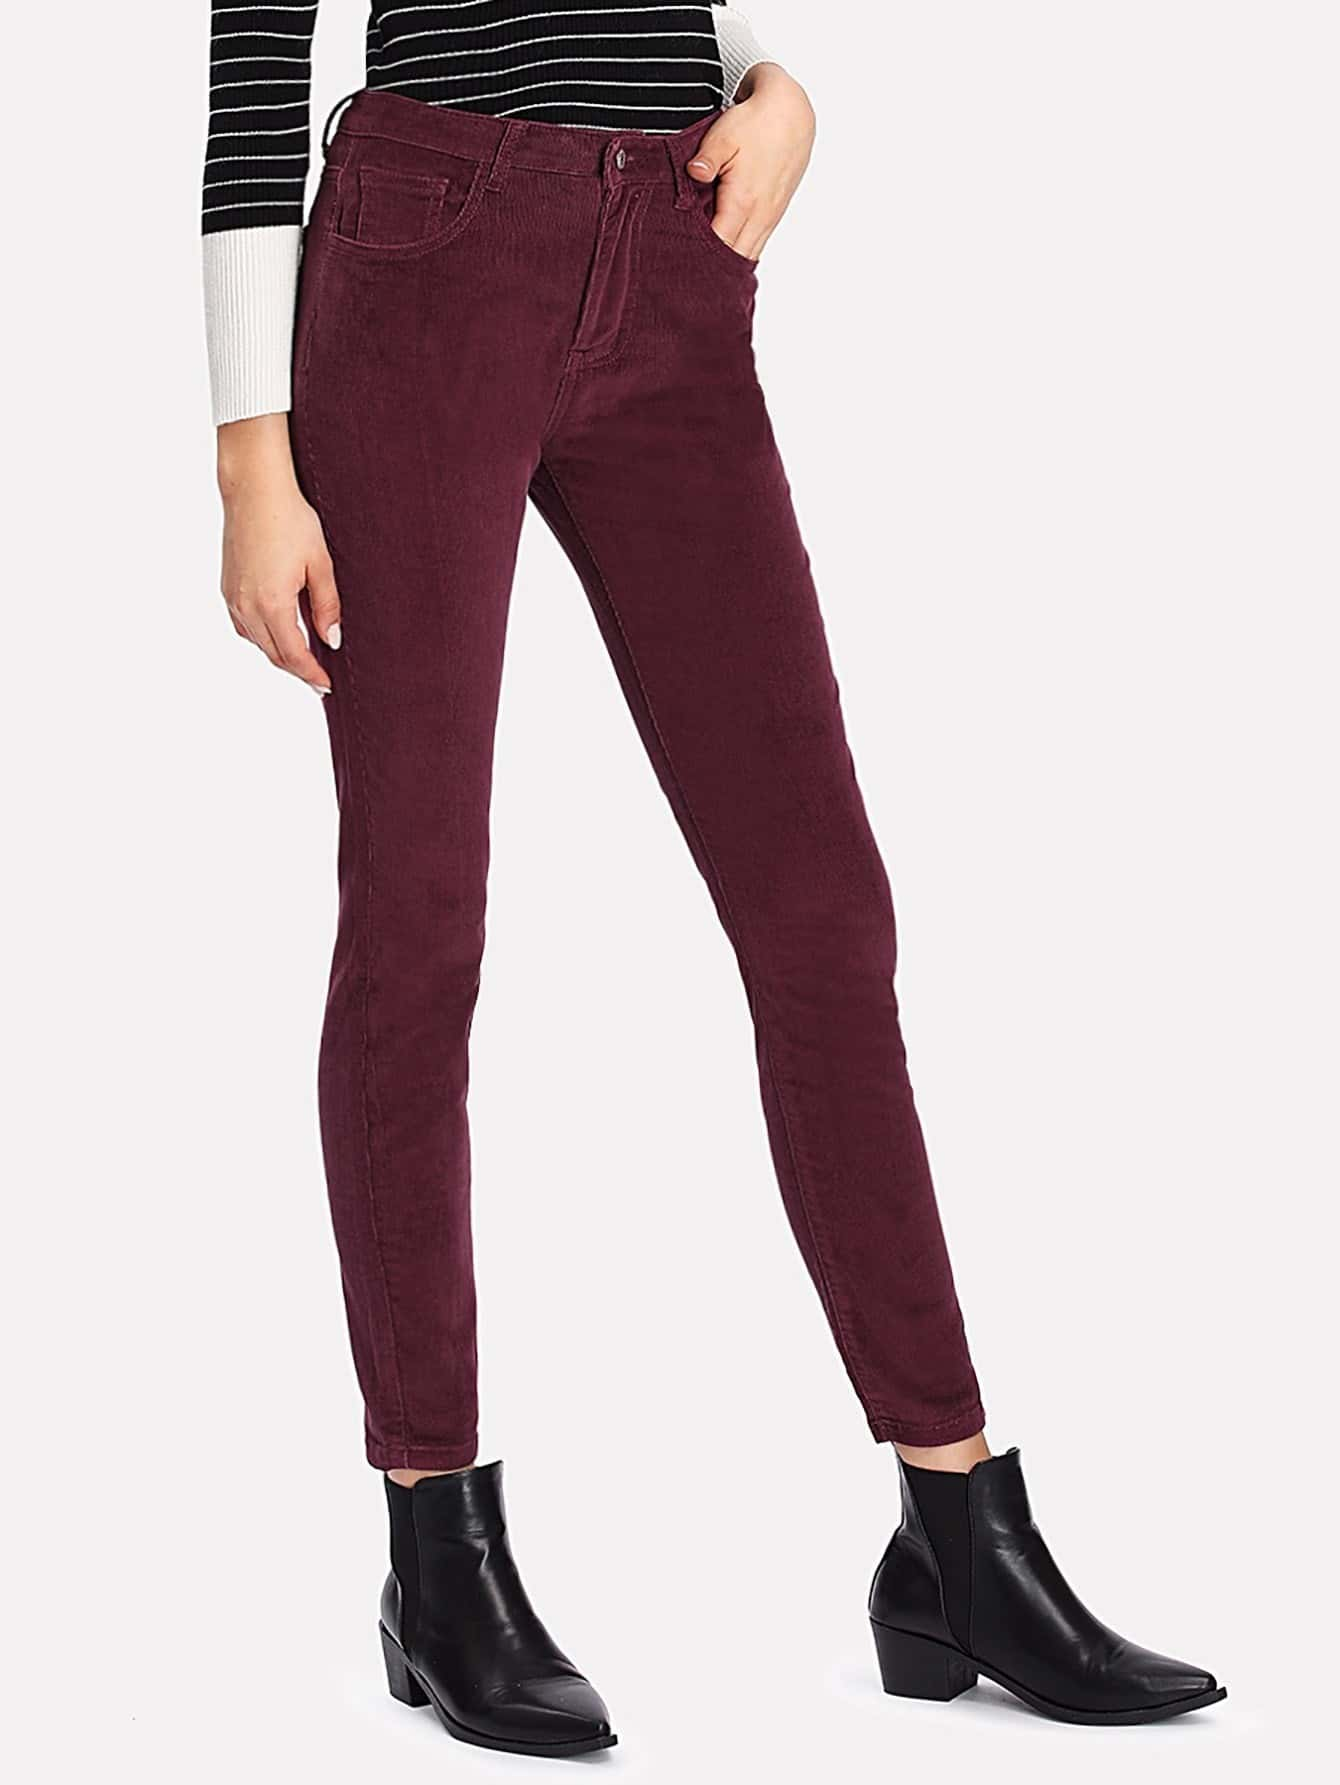 Image of 5 Pocket Skinny Jeans